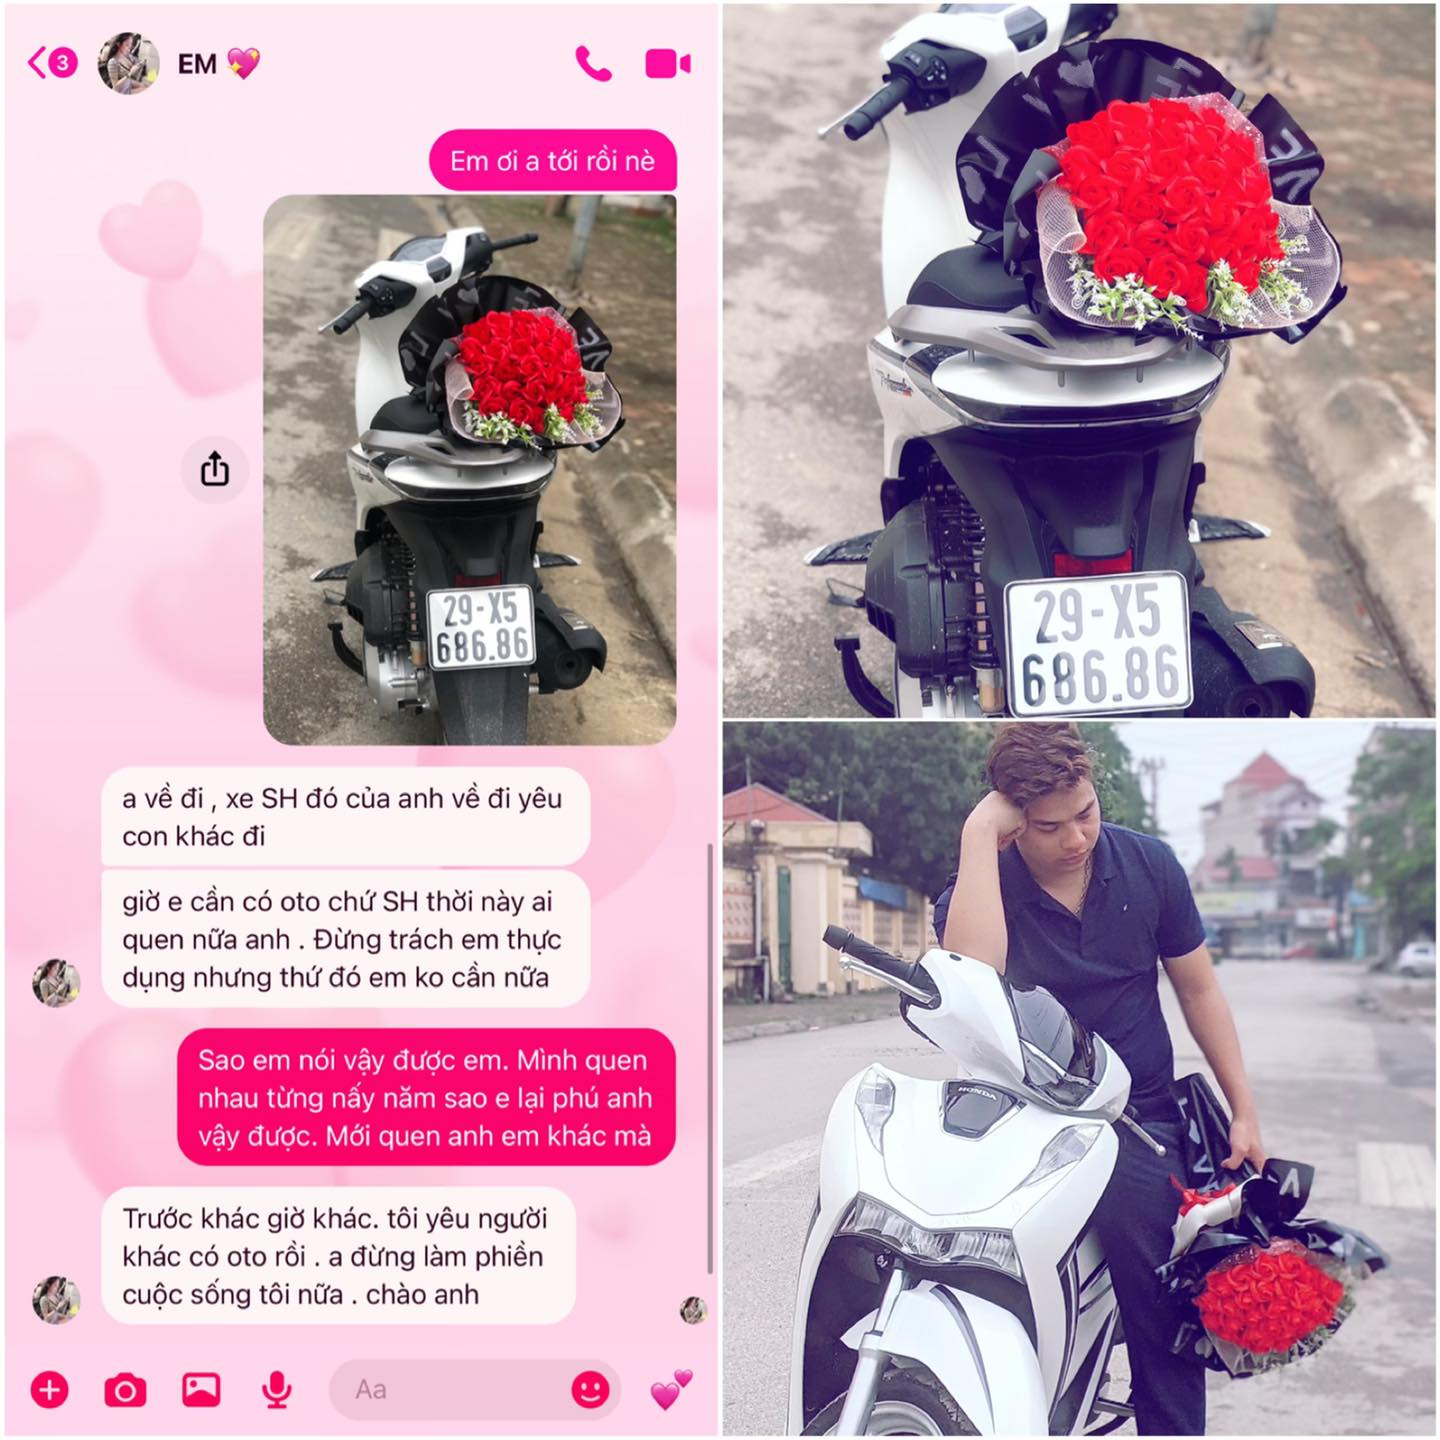 The bitter corner of his heart: The young man who went to Honda SH was kicked by his lover before March 8, the CDM was stunned for the reason of photo 1